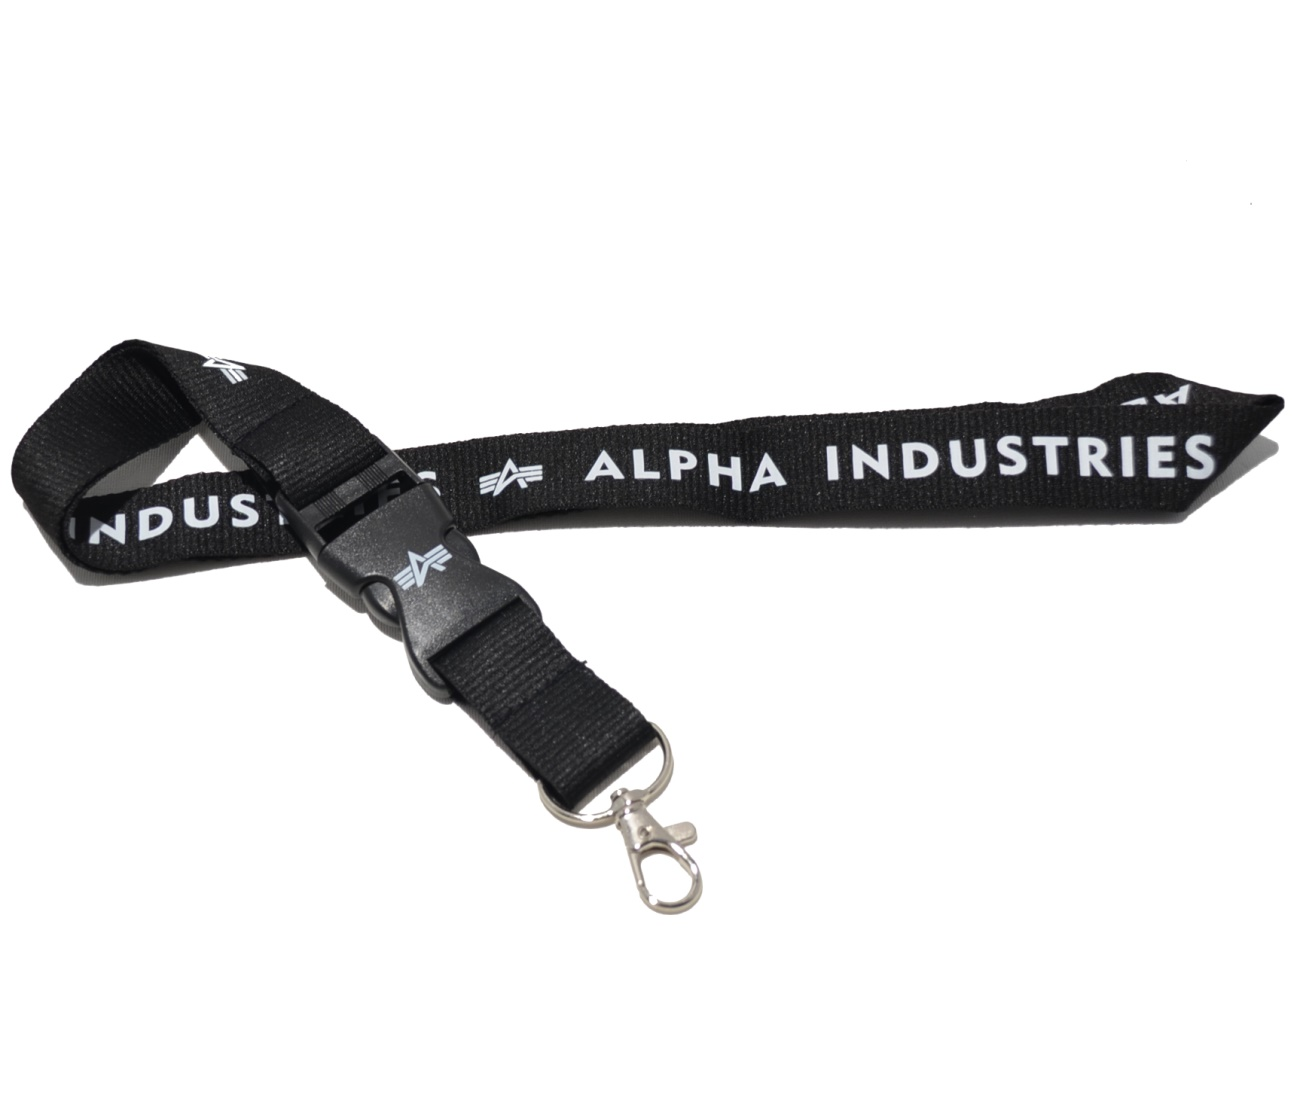 low priced 400f4 bec71 Alpha Industries Schlüsselband Keychain - Alpha Industries bei Ostzone Shop  - www.ostzoneshirts.de